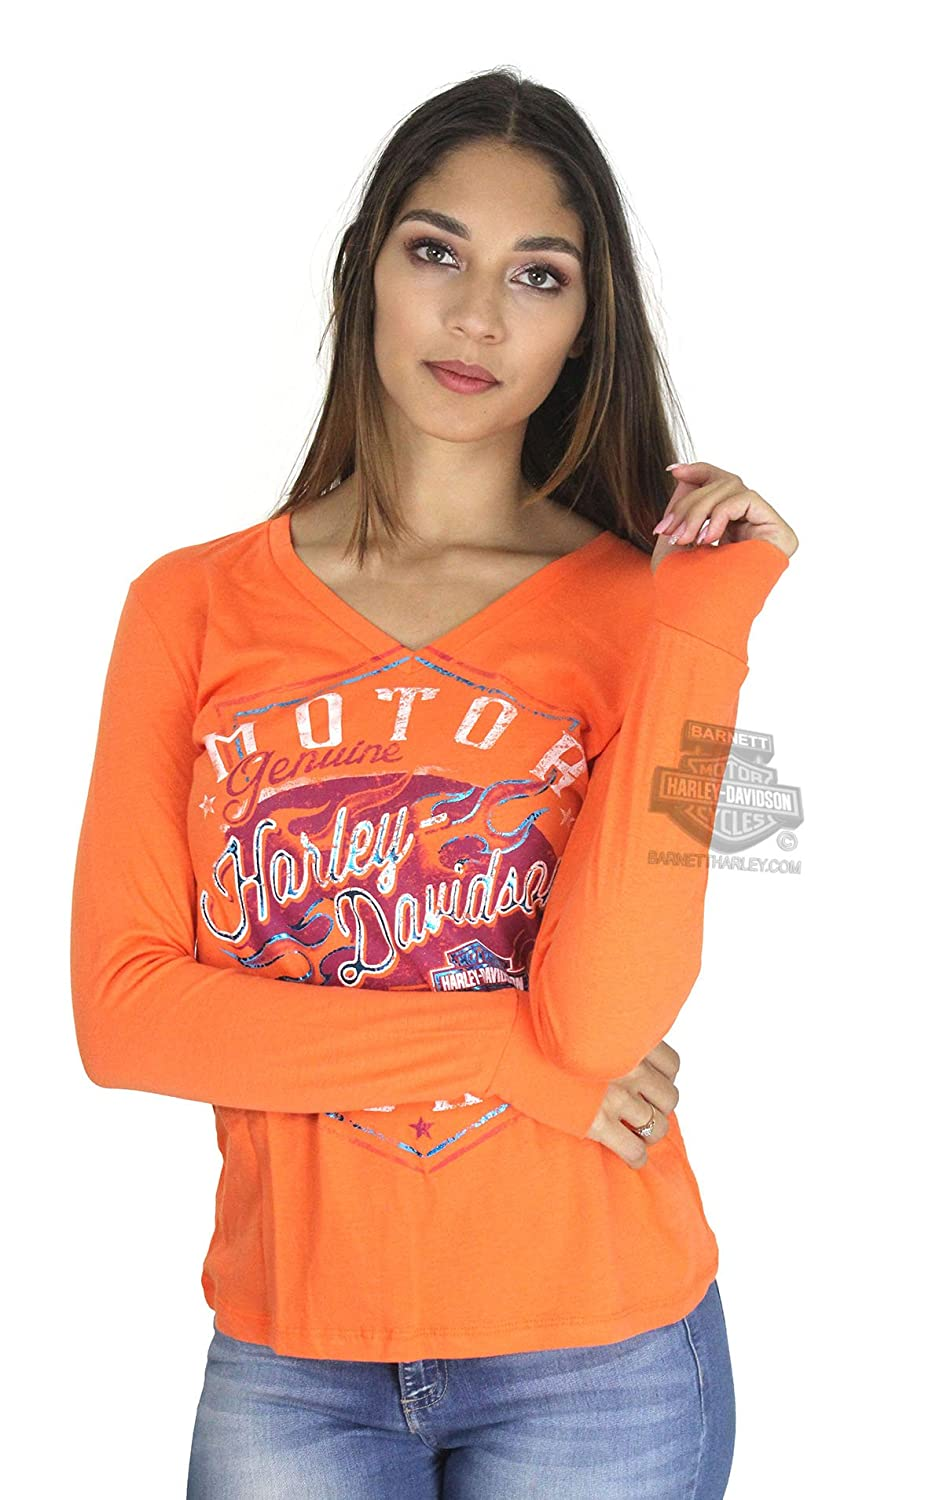 4d7ee70ab846 Amazon.com: Harley-Davidson Womens Braking Properly Flames with B&S Foil  Print Orange Long Sleeve (Small): Clothing